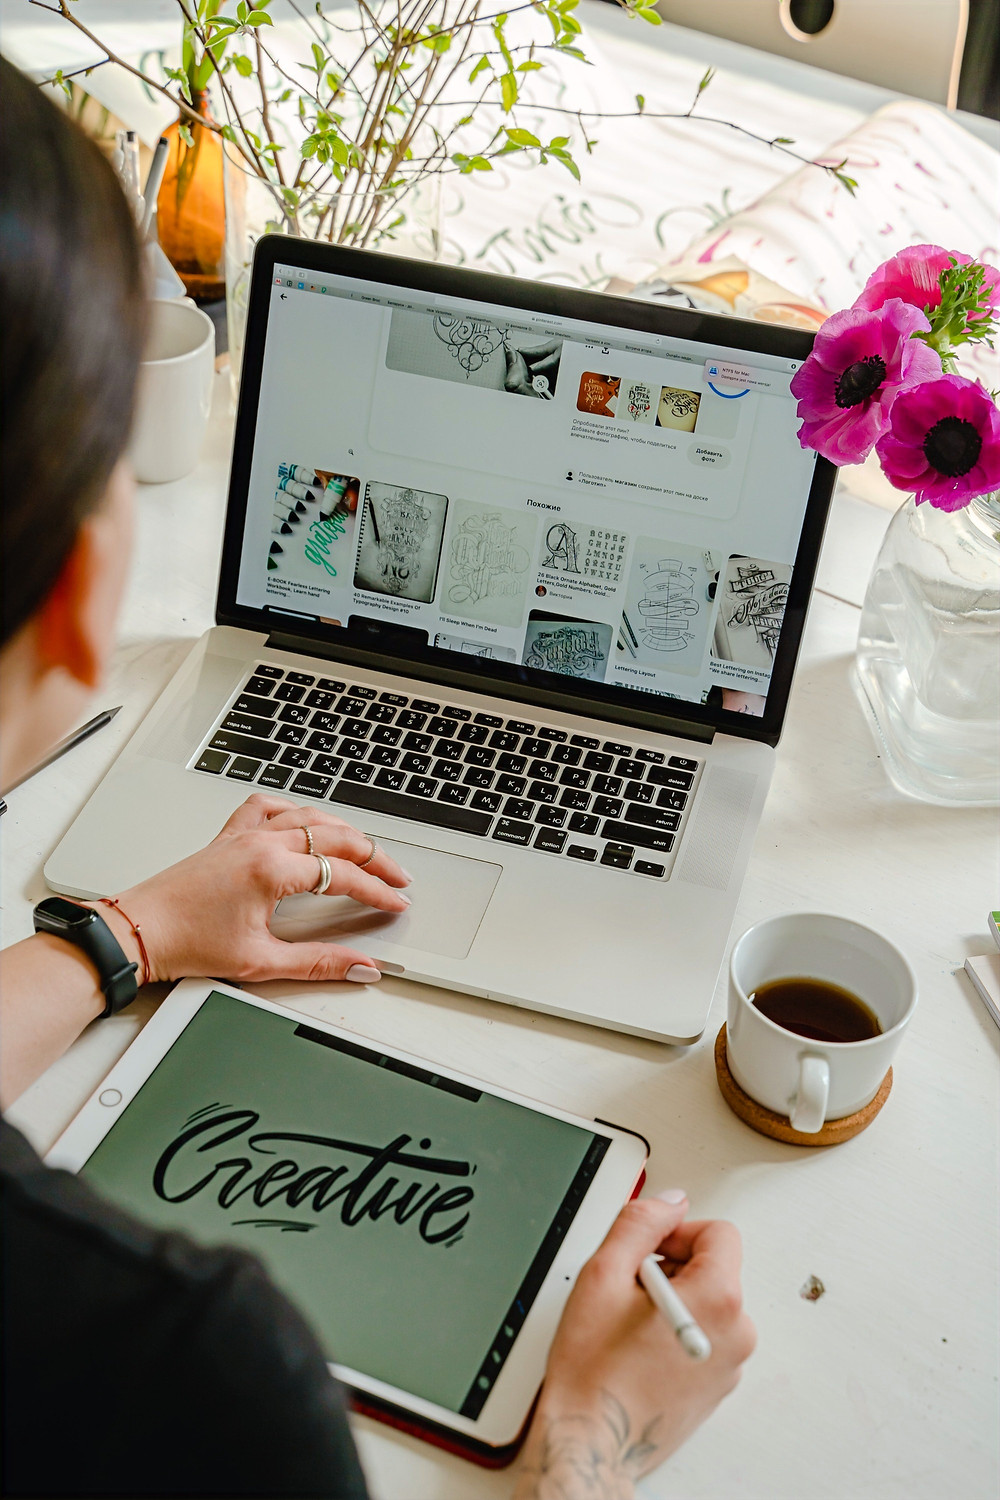 A SEO expert uses a laptop and tablet while creating SEO optimized content.